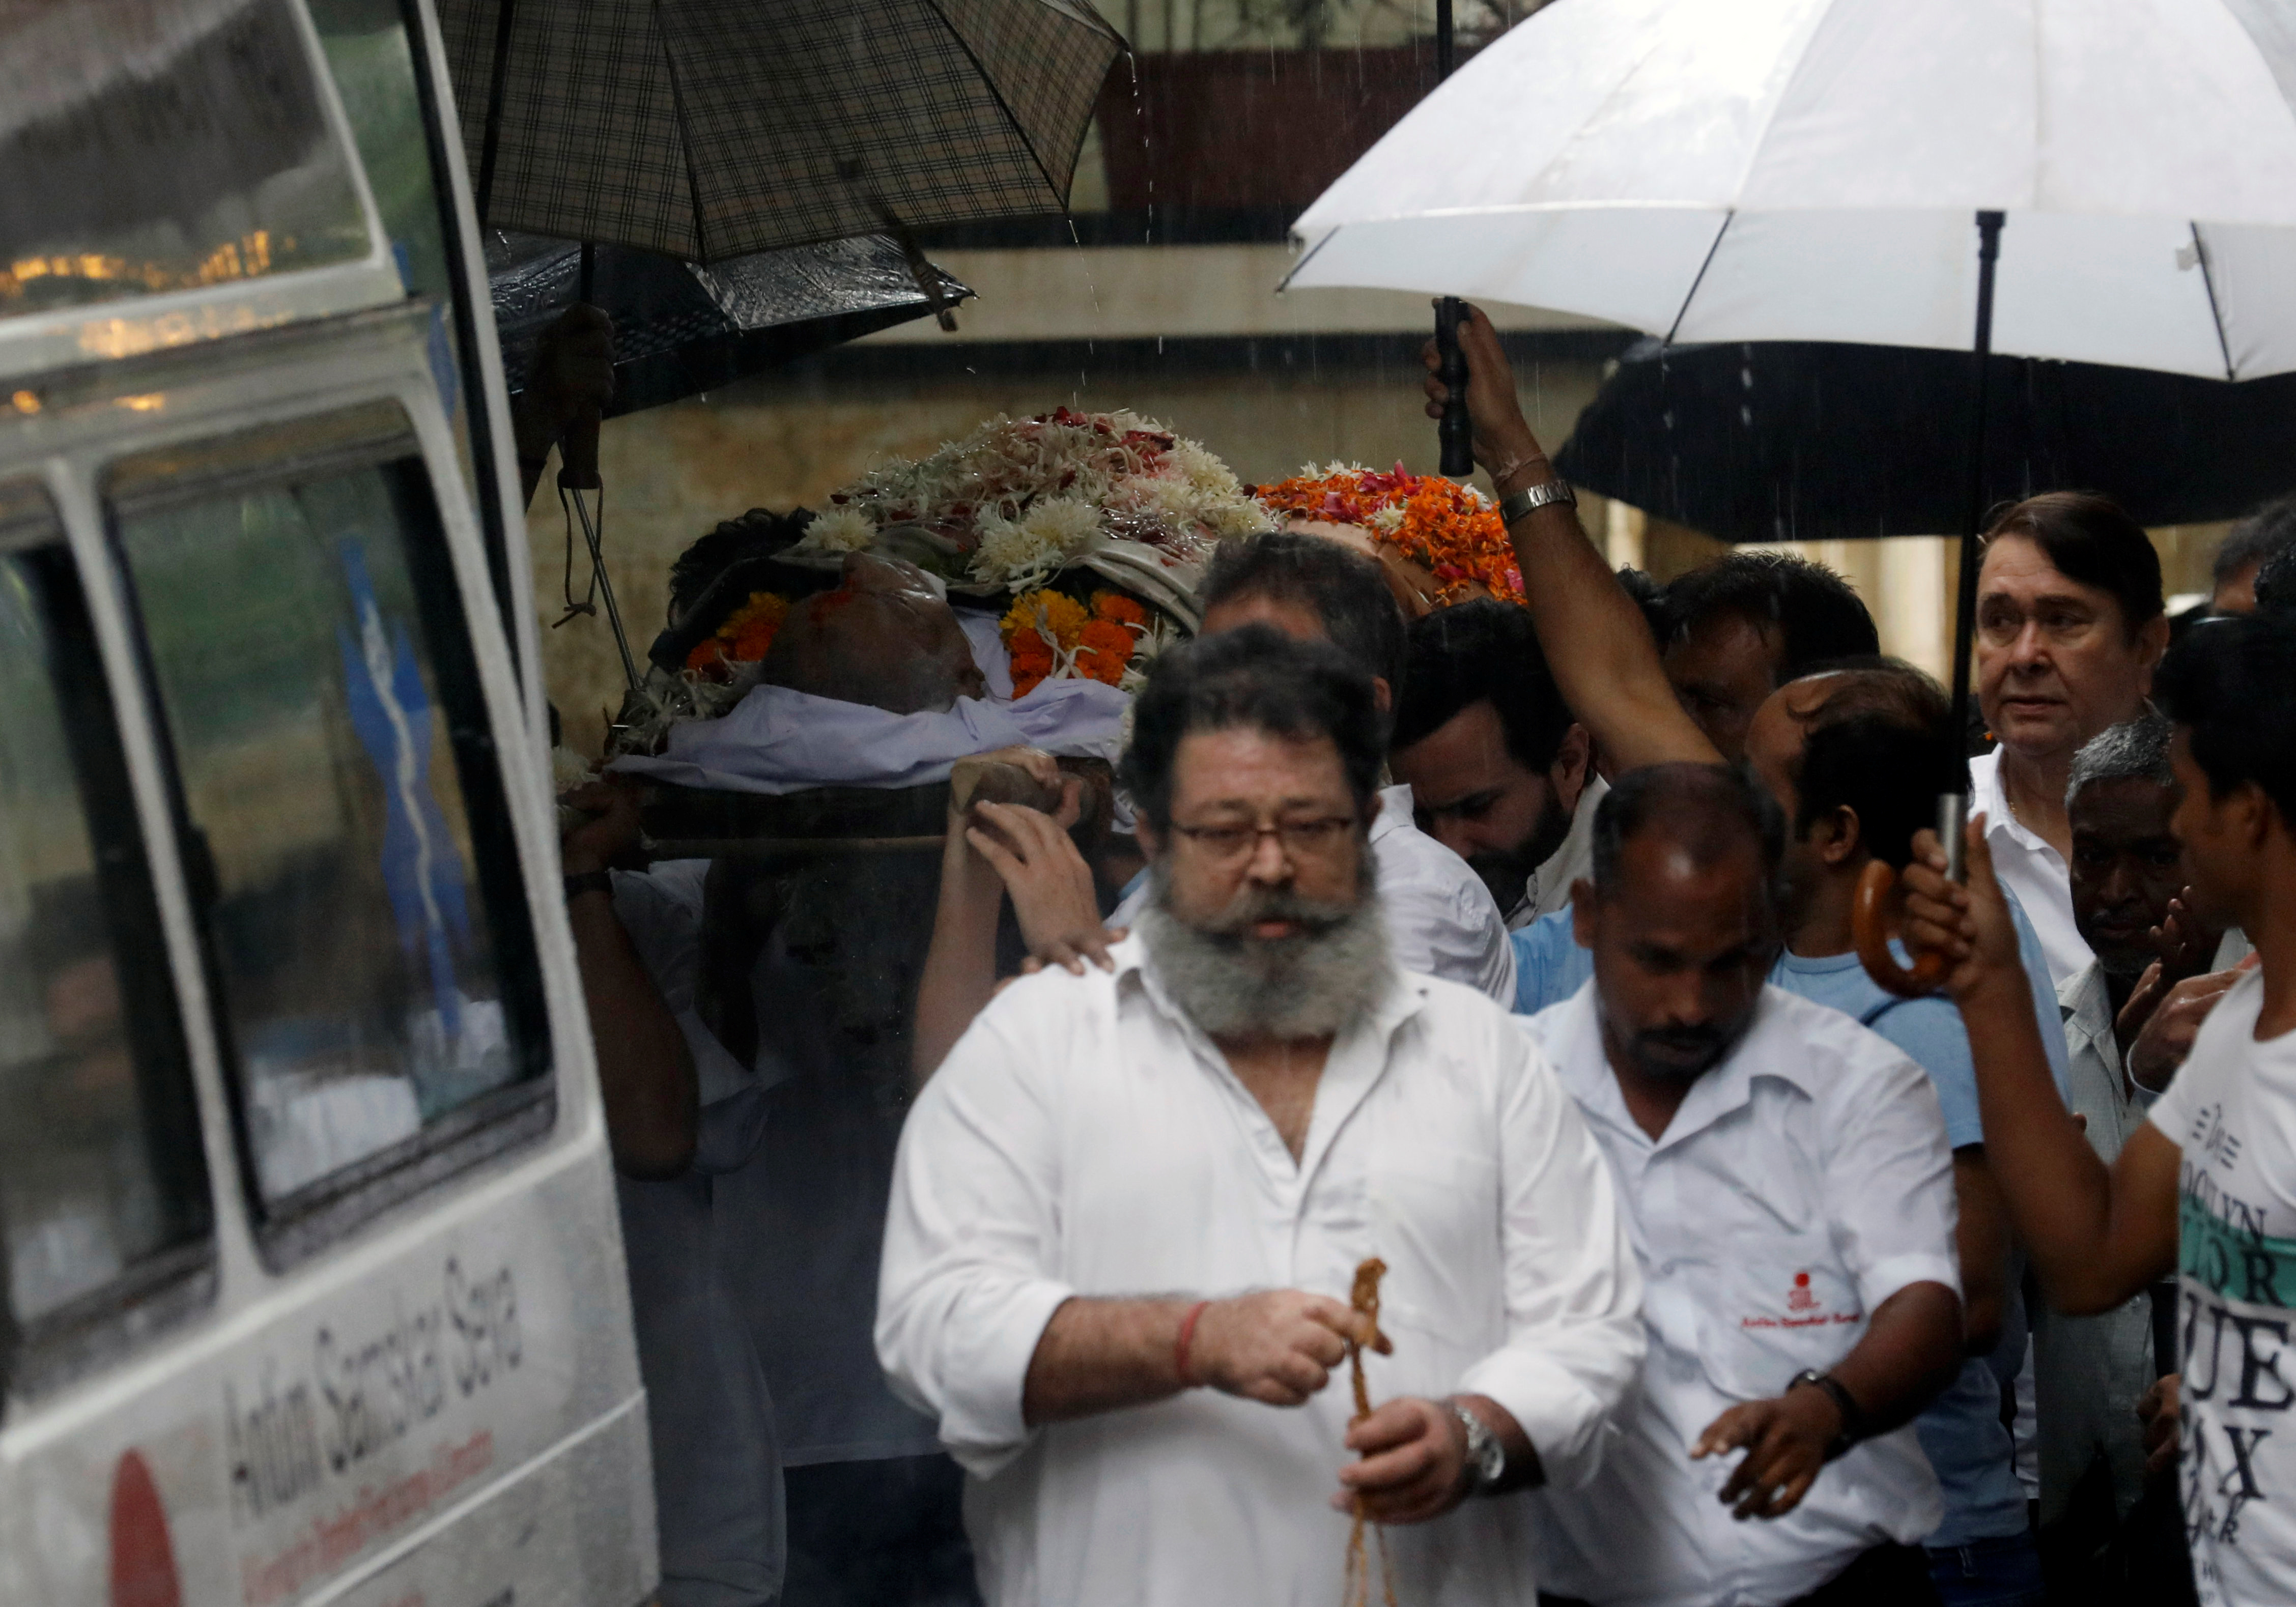 Shashi Kapoor's son Kunal Kapoor and nephew Randhir Kapoor seen at the funeral procession. (Image Credit: Danish Siddiqui/Reuters)